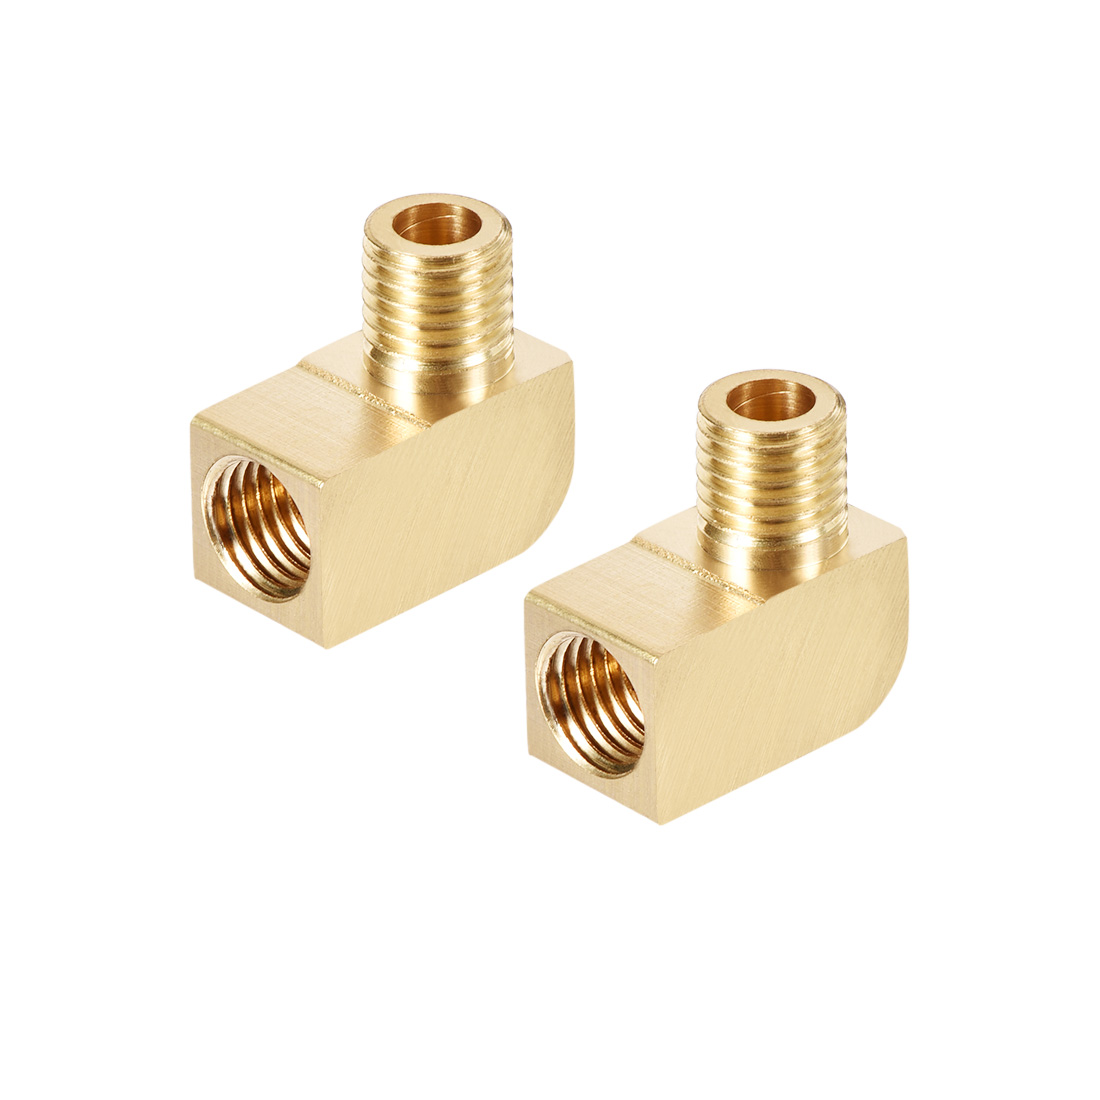 Brass Pipe Fitting 90 Degree Barstock Street Elbow M8 Male x M8 Female Pipe 2pcs